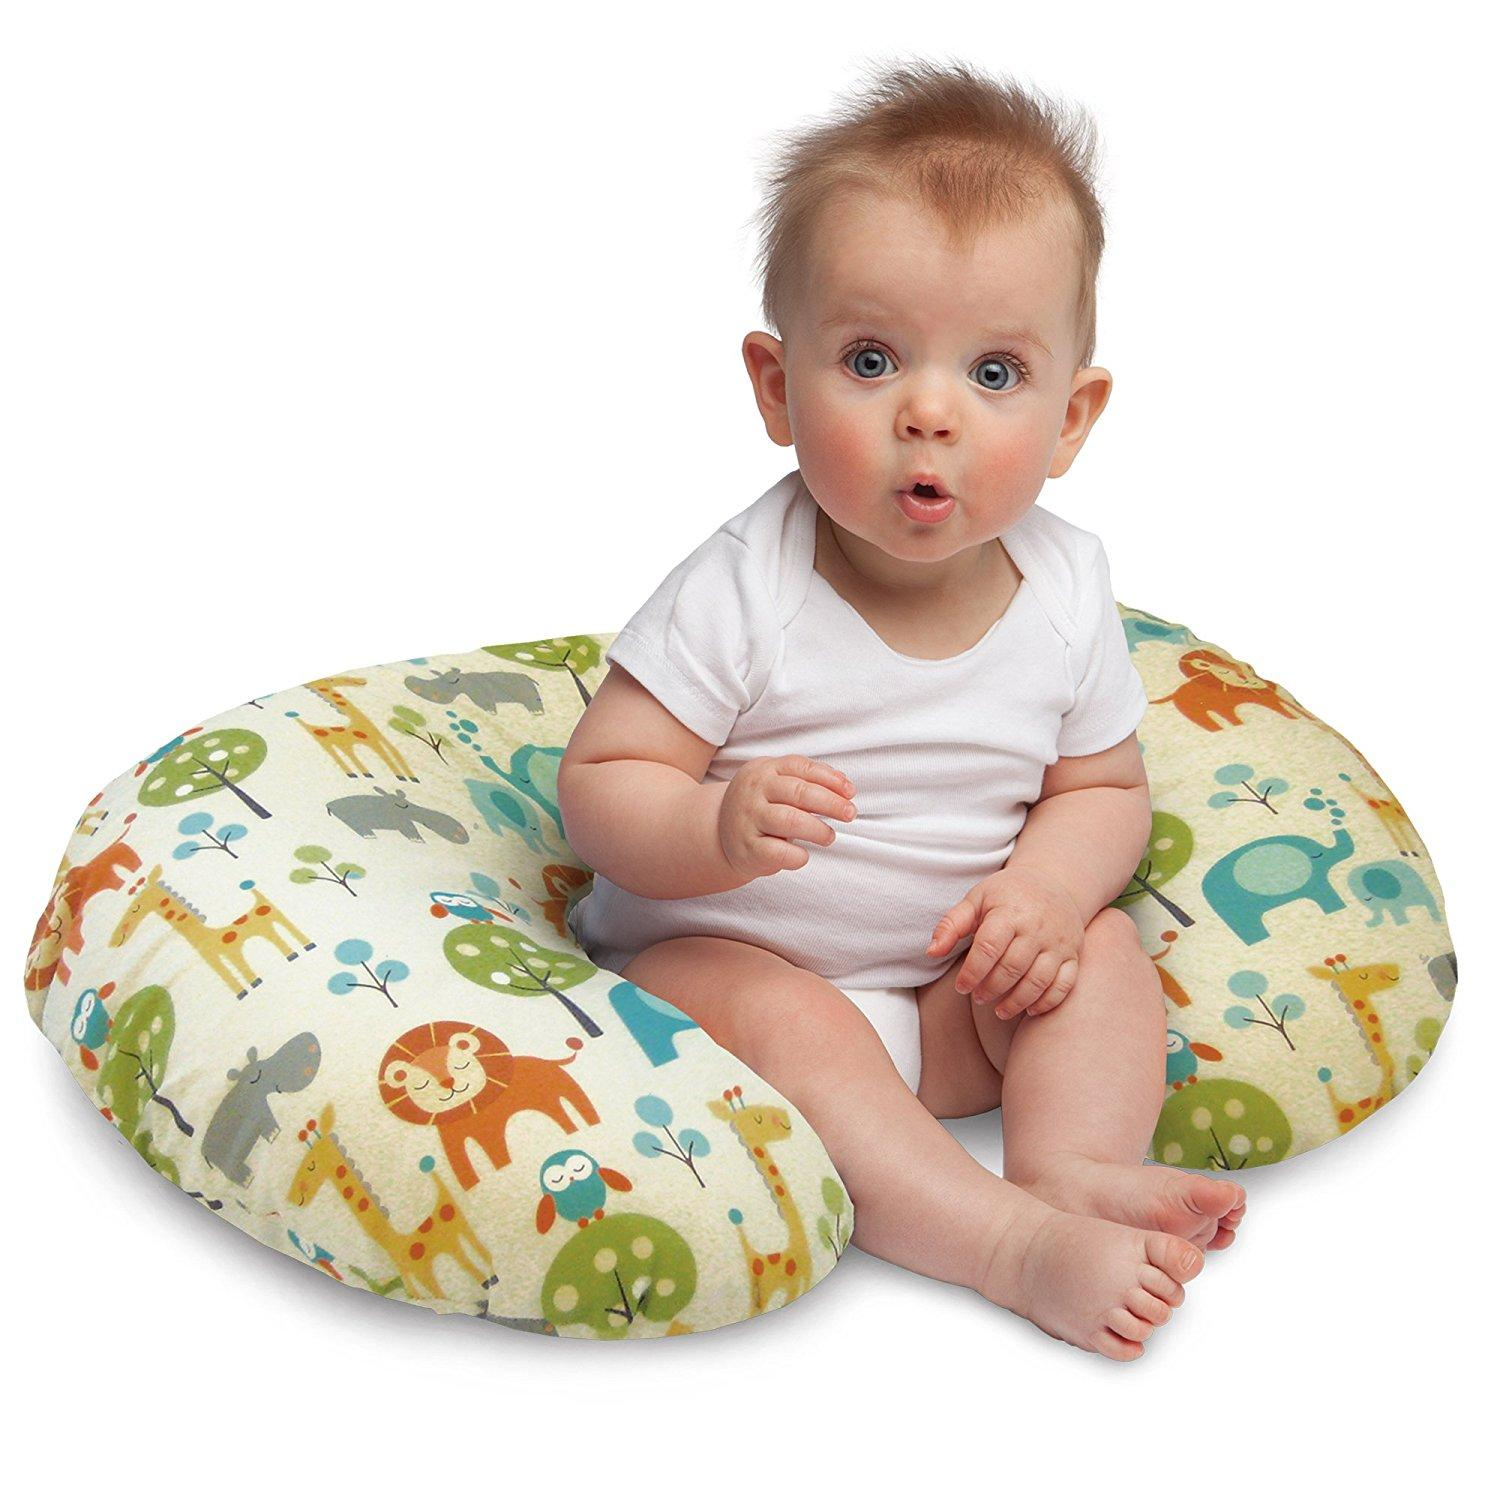 amazon-com-boppy-nursing-pillow-and-positioner-peaceful-jungle-baby-1500-x-1500.jpg